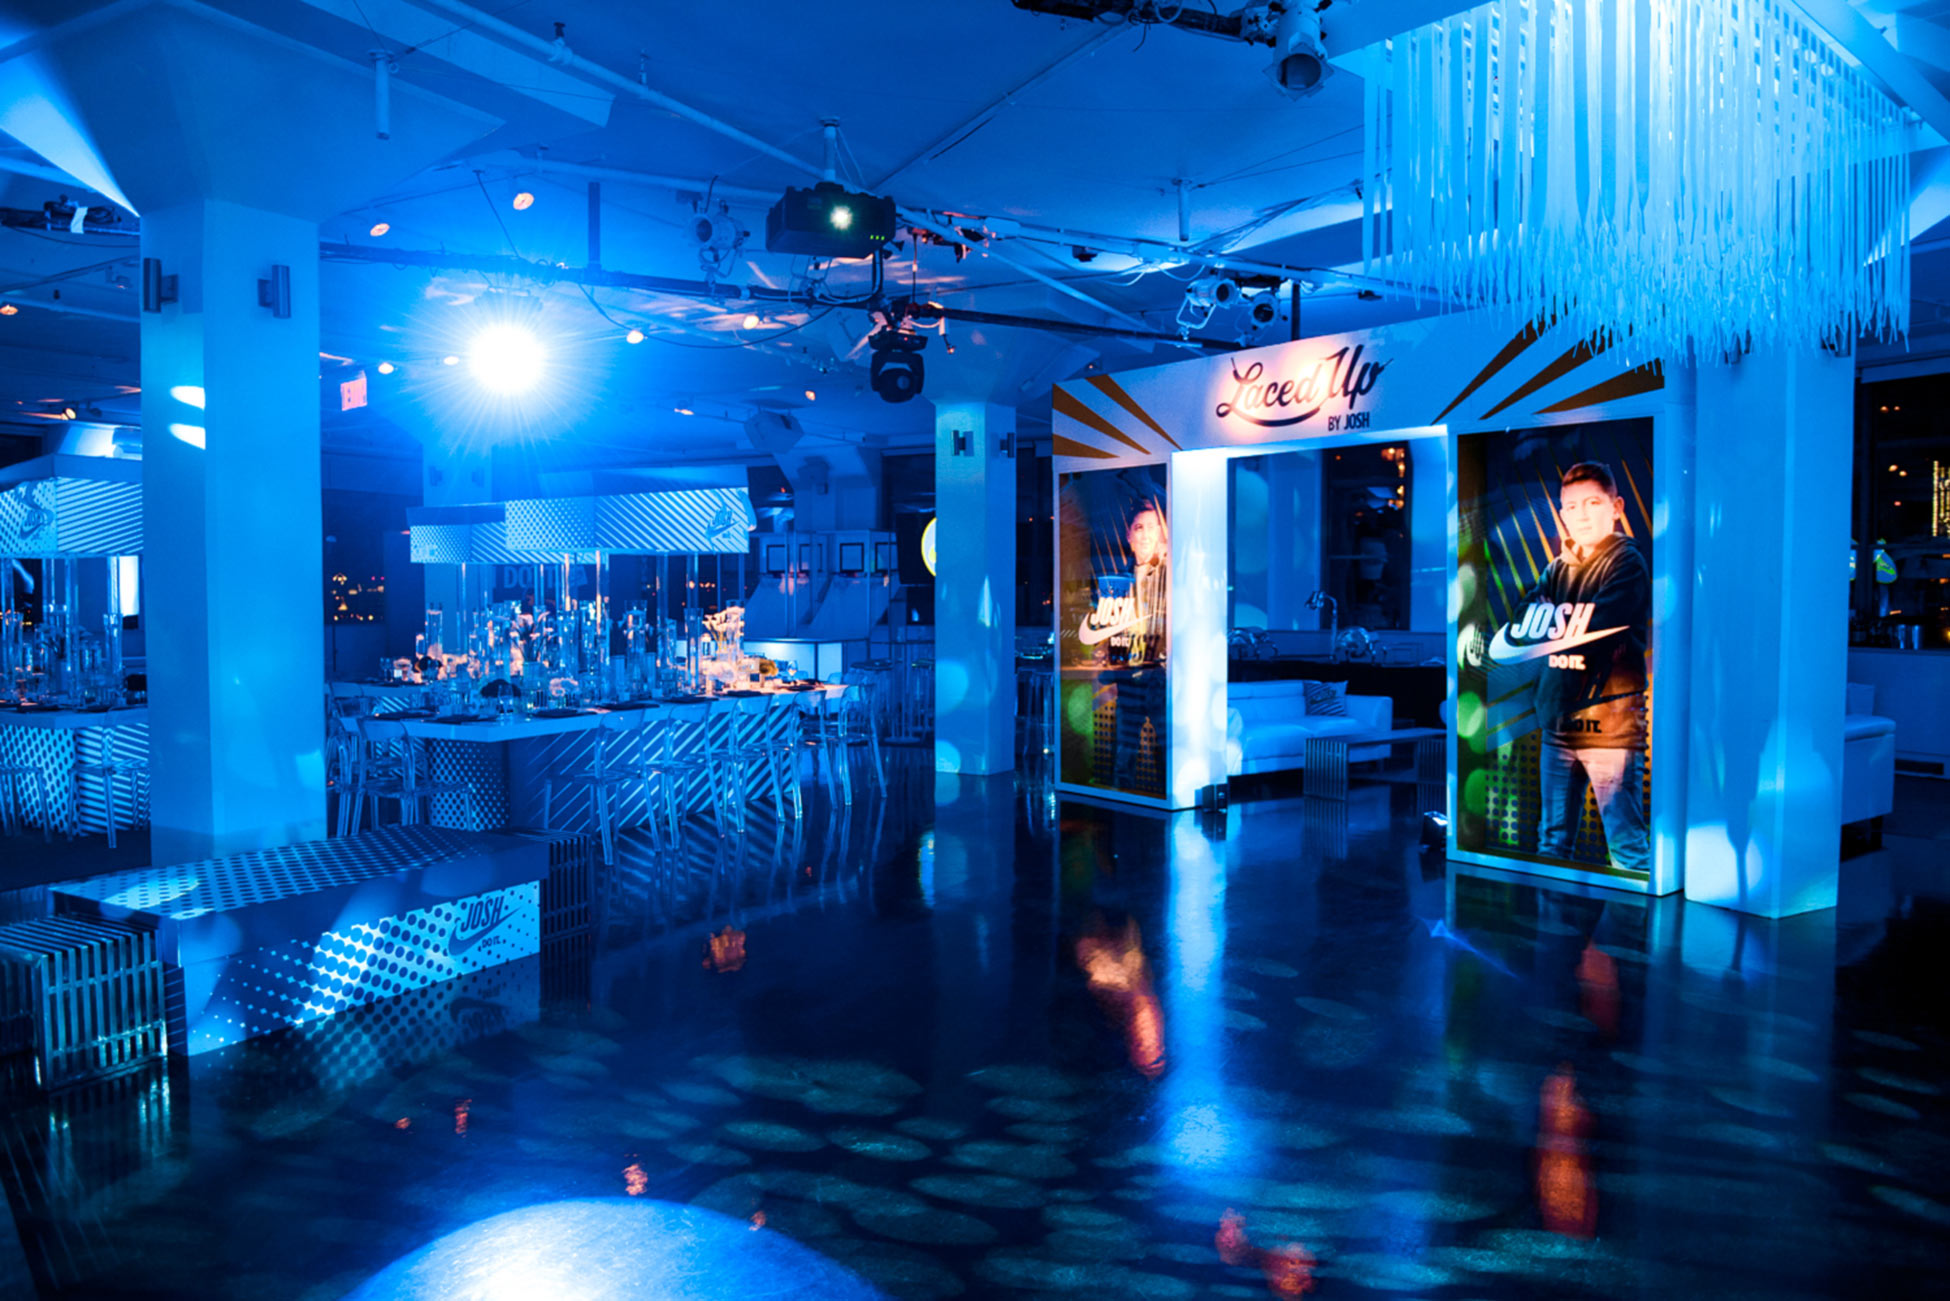 Event venue, decorated in sneaker theme for Bar Mitzvah.